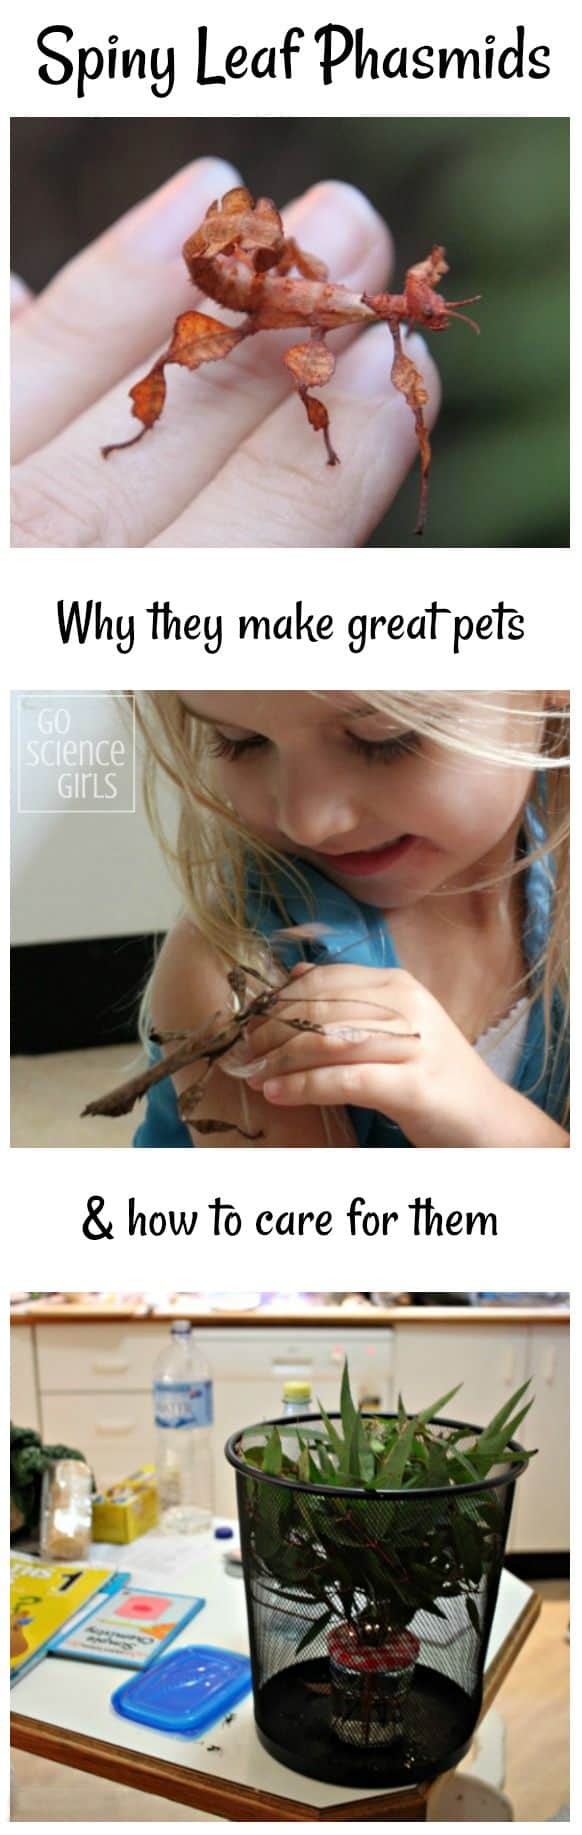 Spiny leaf phasmids make great pets for toddlers